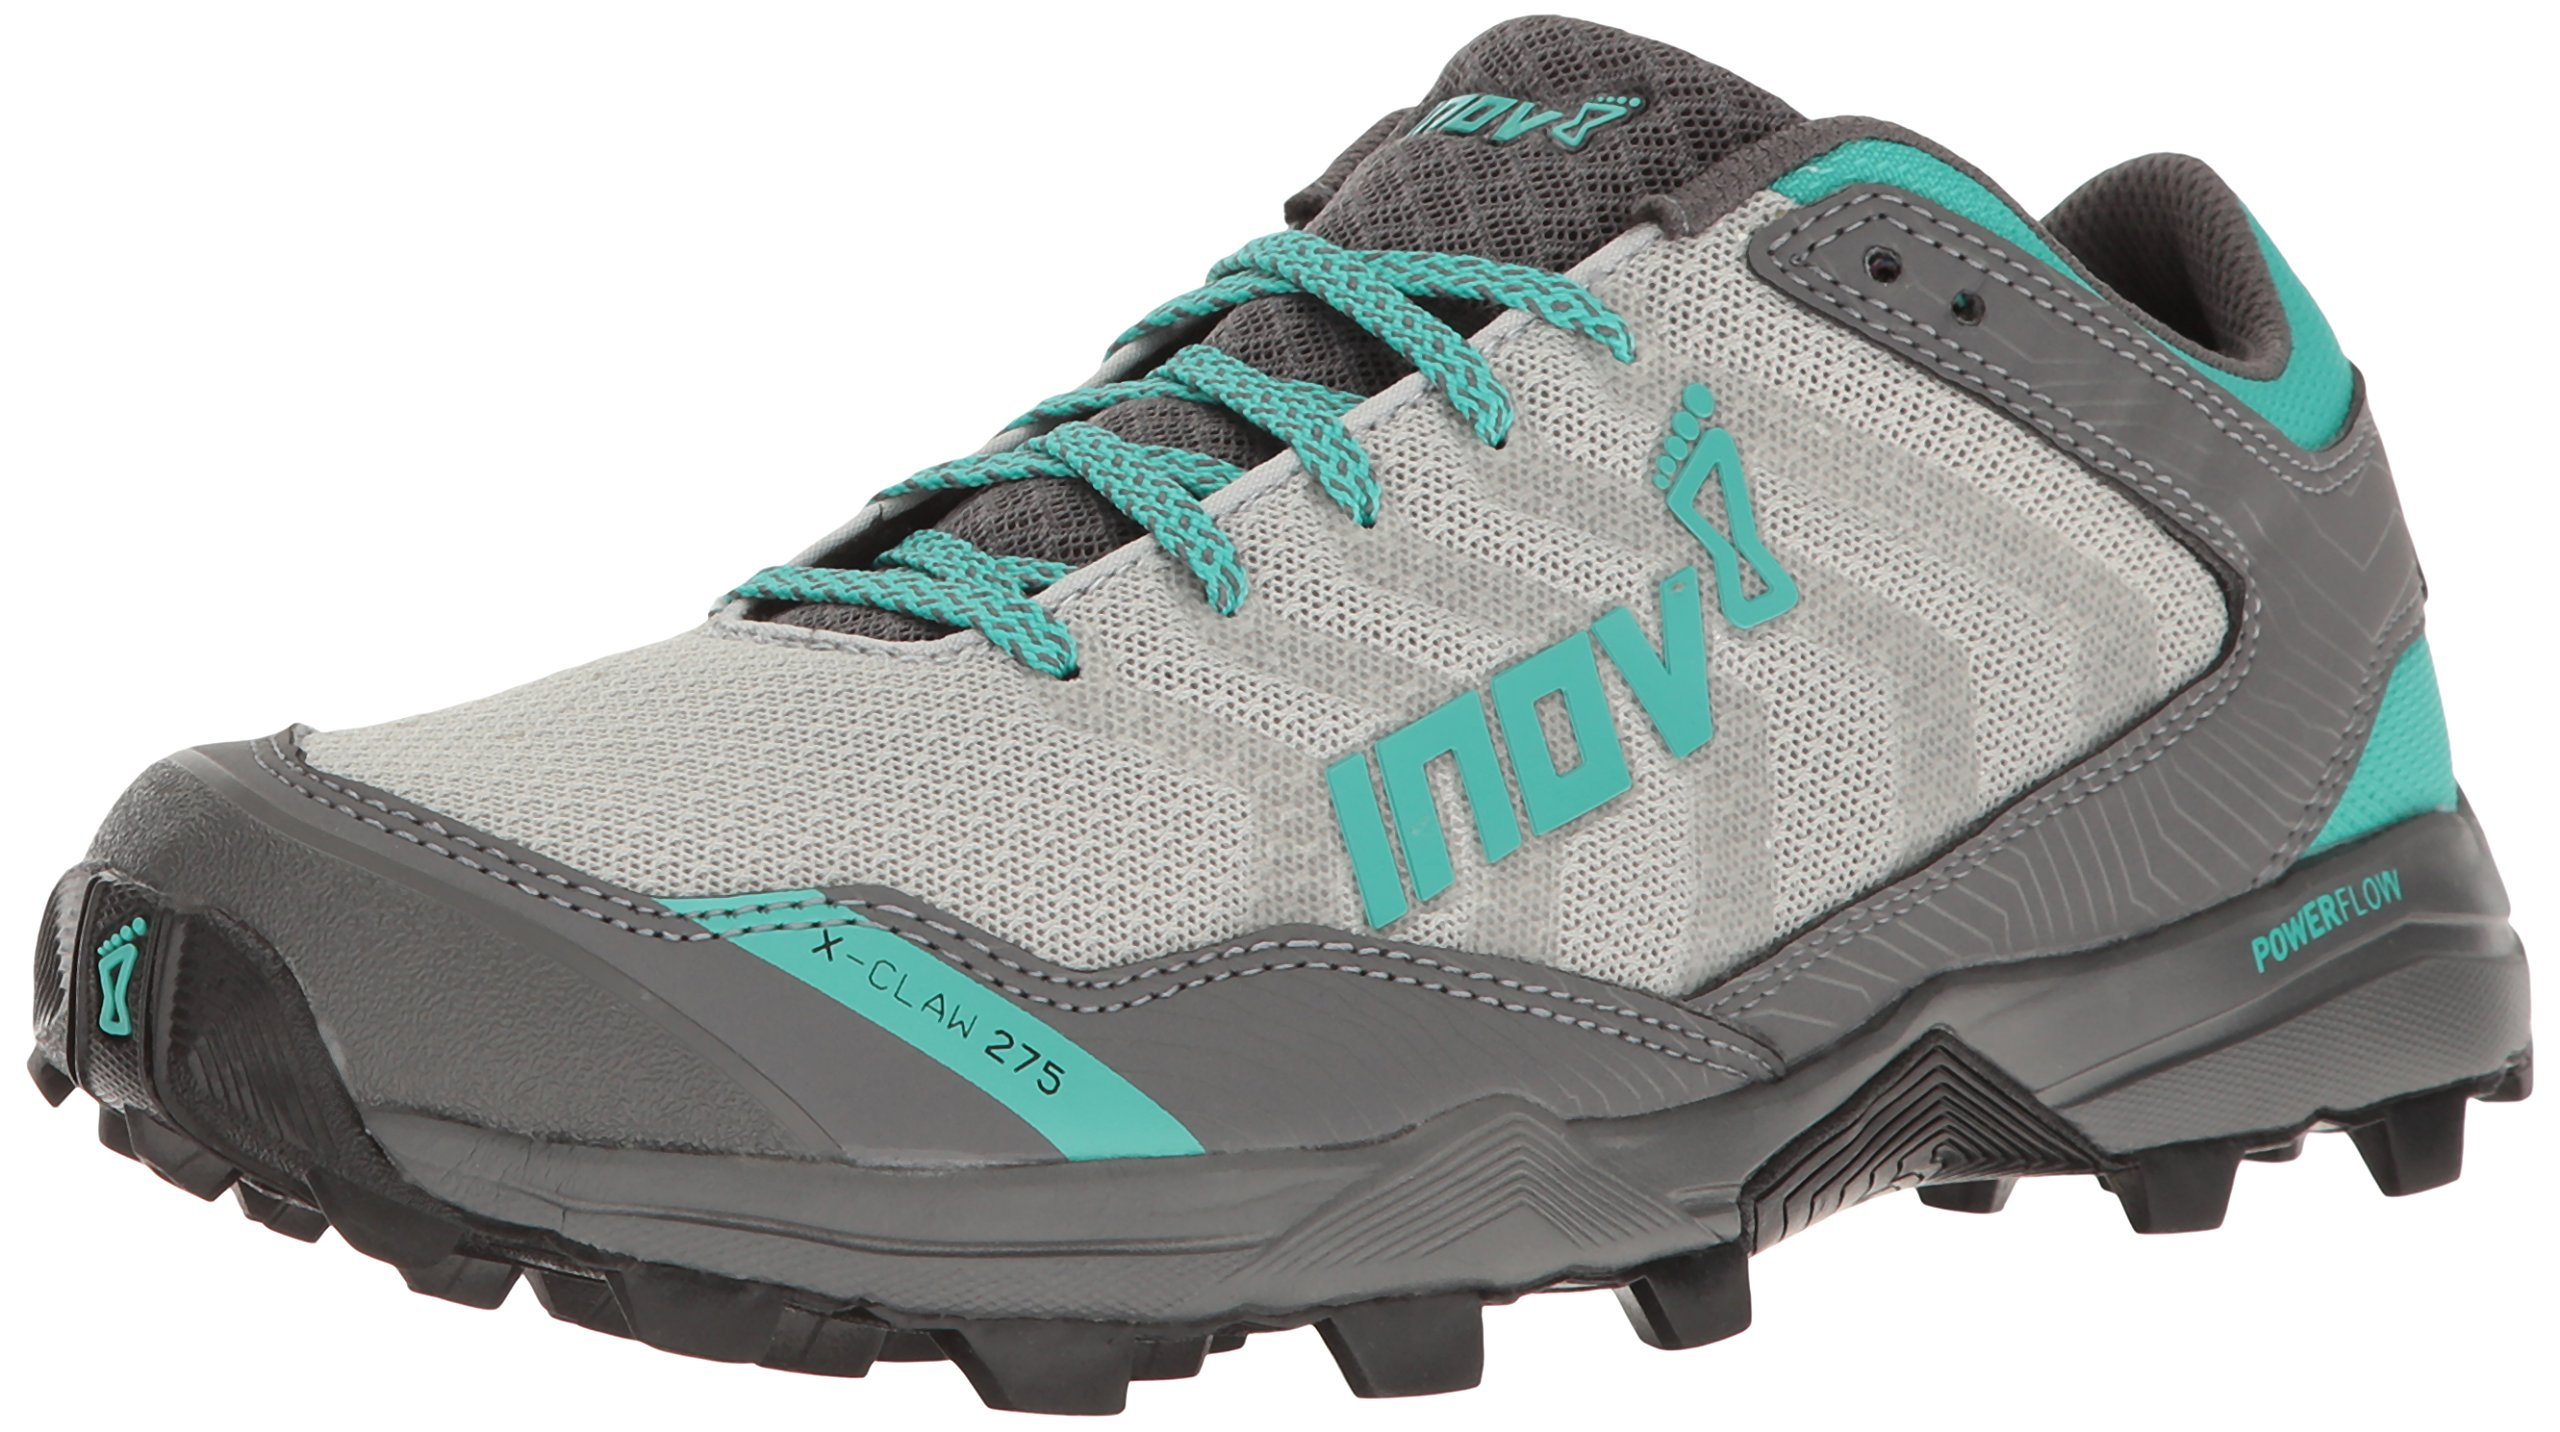 Inov-8 Women's X-Claw 275 Chill Trail Runner, Silver/Teal/Grey, 7 E US